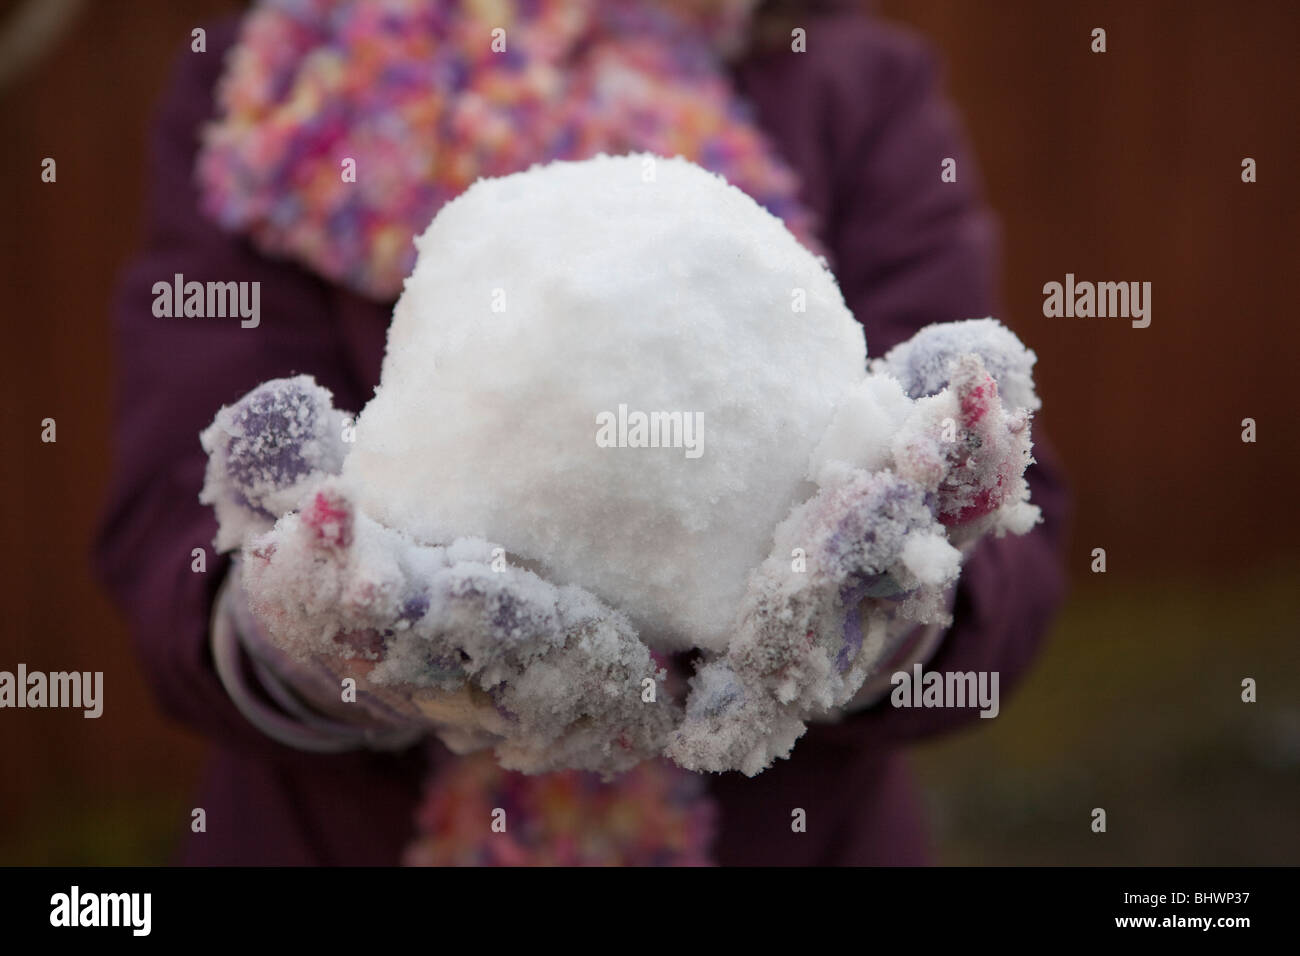 child holding a snowball - Stock Image